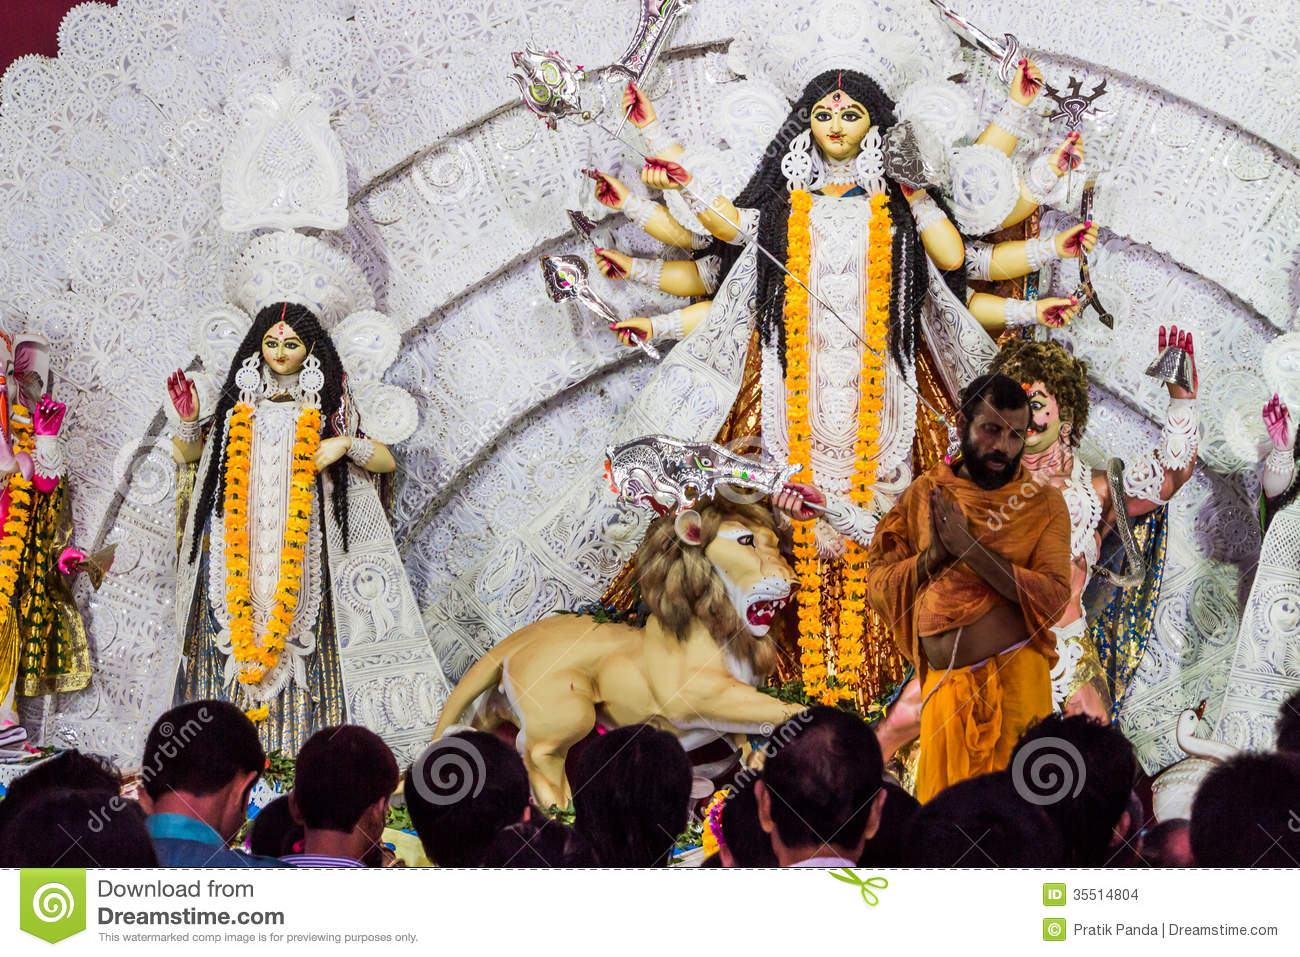 a history of the worship of durga in india In may 2014, indian prime minister narendra modi travelled to the riverside holy  city of varanasi to worship mother goddess ganges in gratitude for his  mata or  mother india, who was inevitably a hindu and a version of durga  atreyee sen  (2009) inventing women's history: female valour, martial.